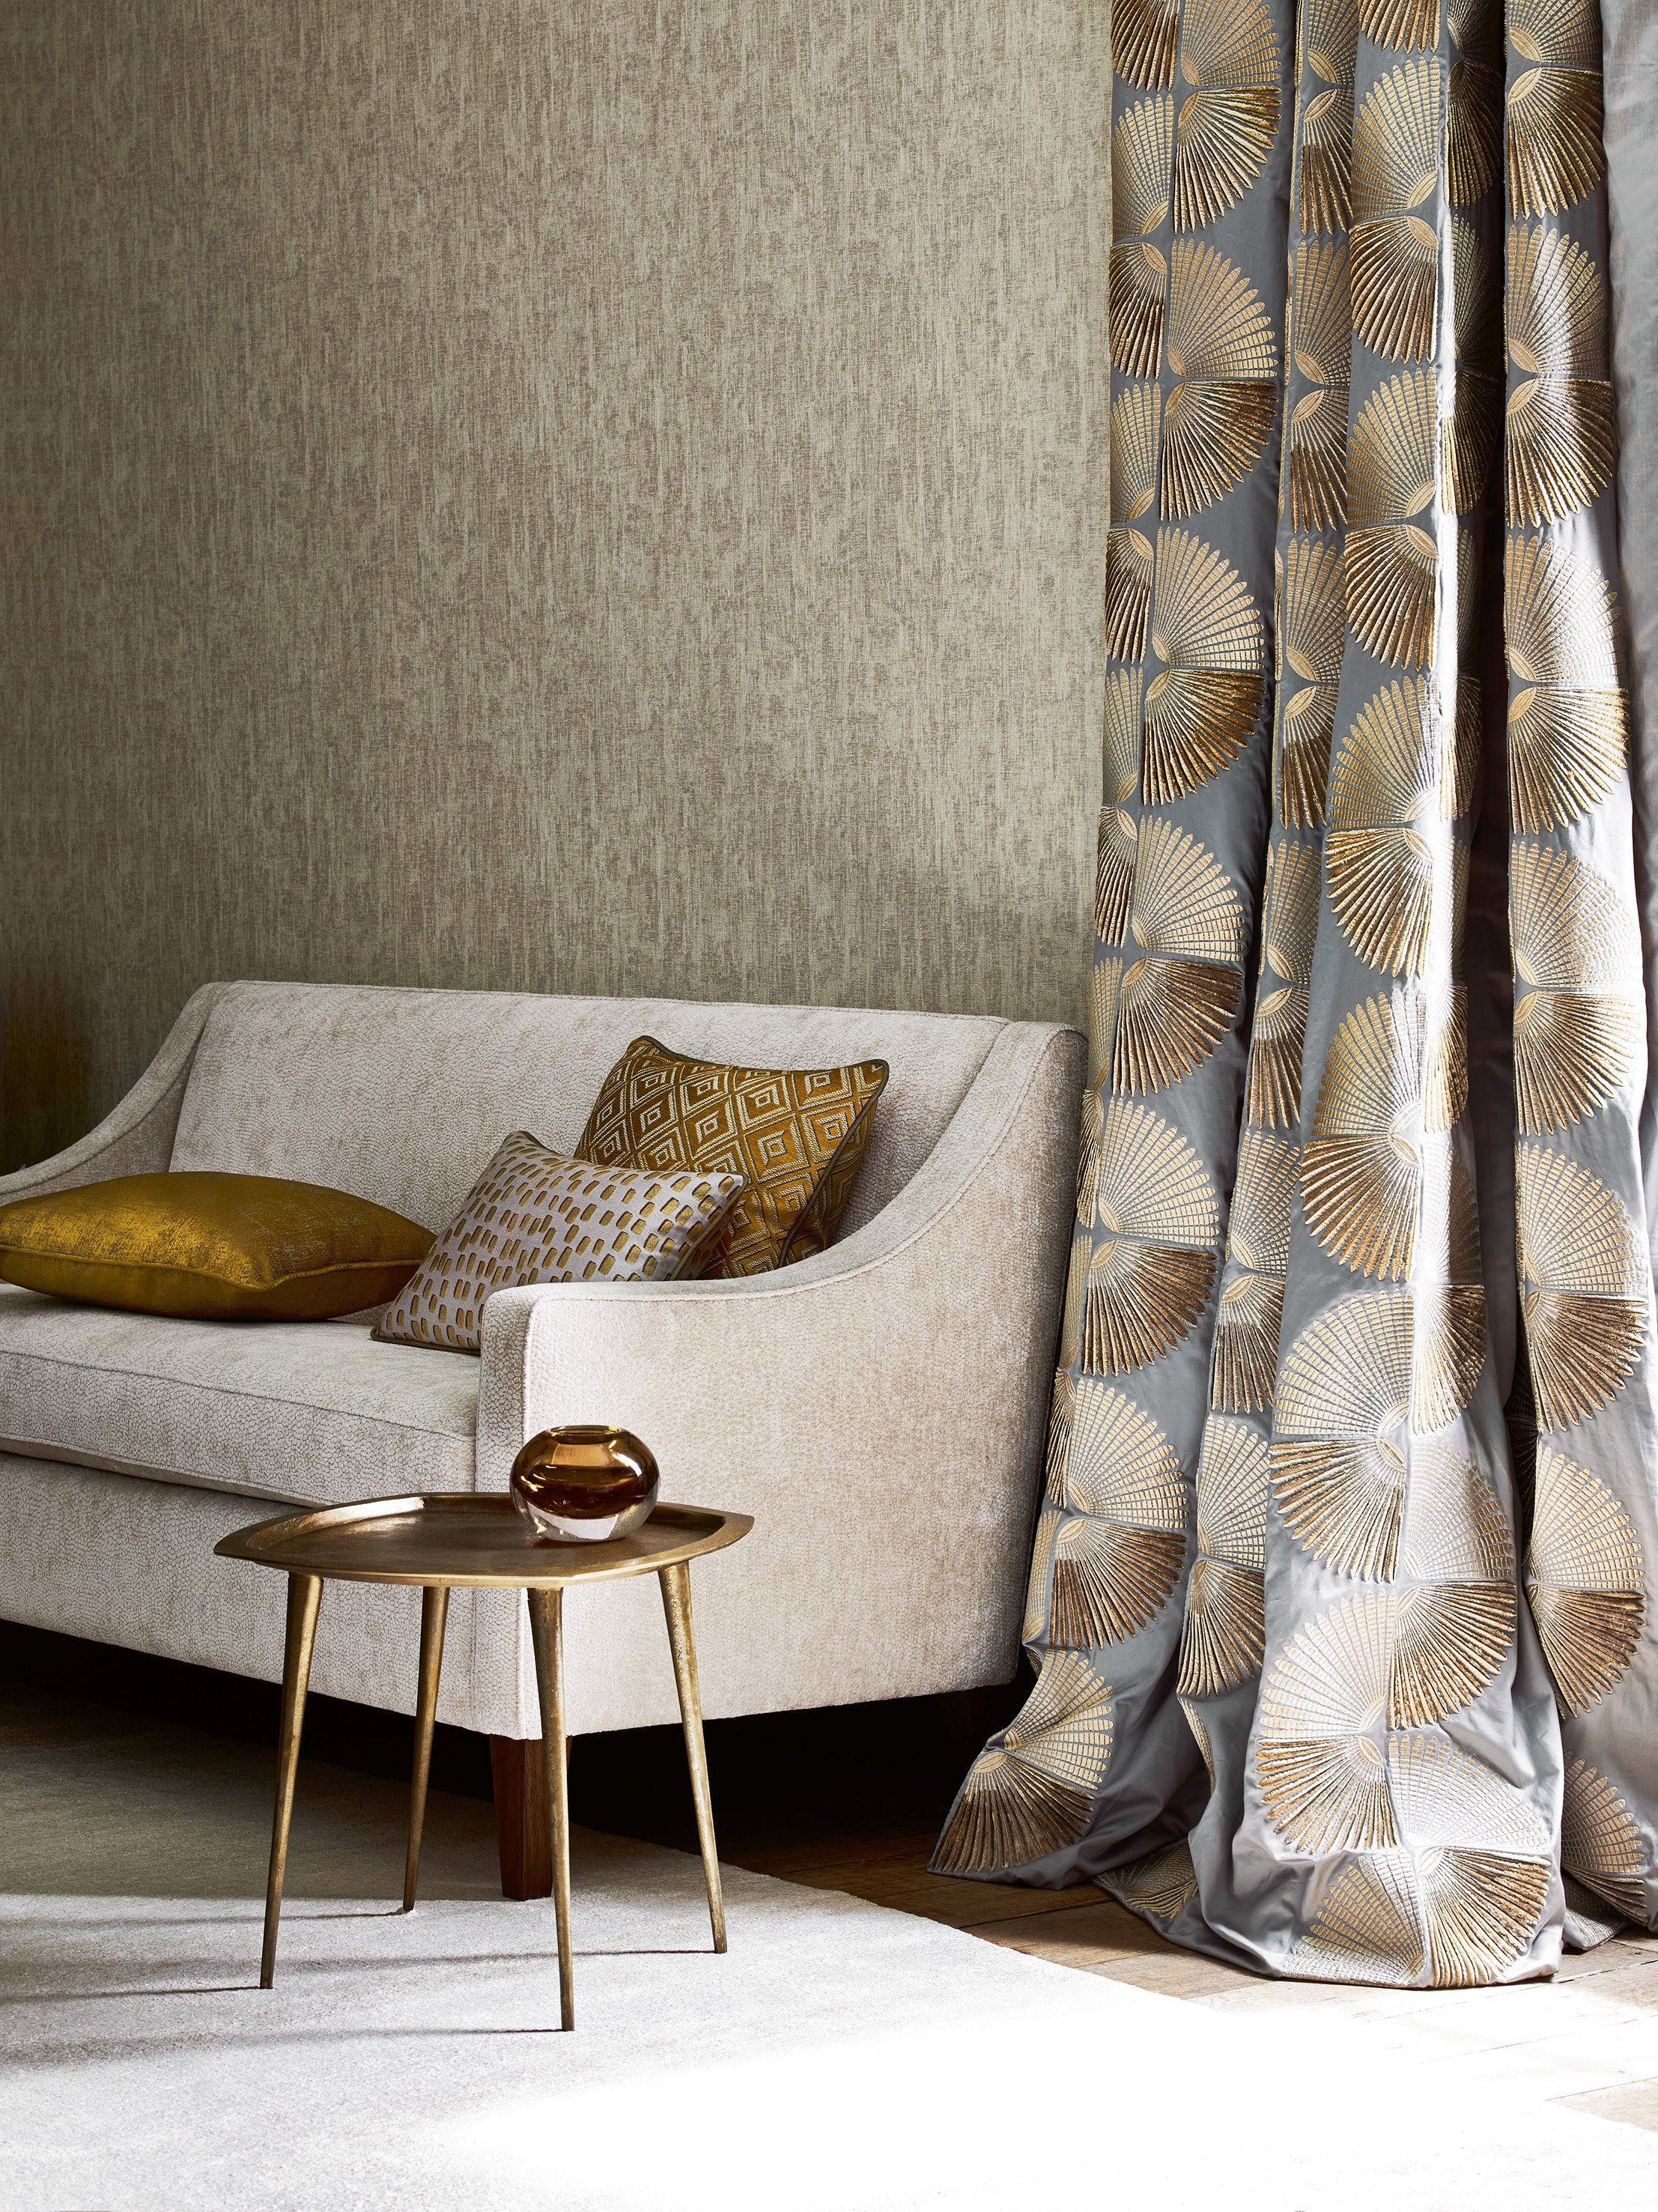 Fabrics from the atmosphere iv collection by jane churchill jane